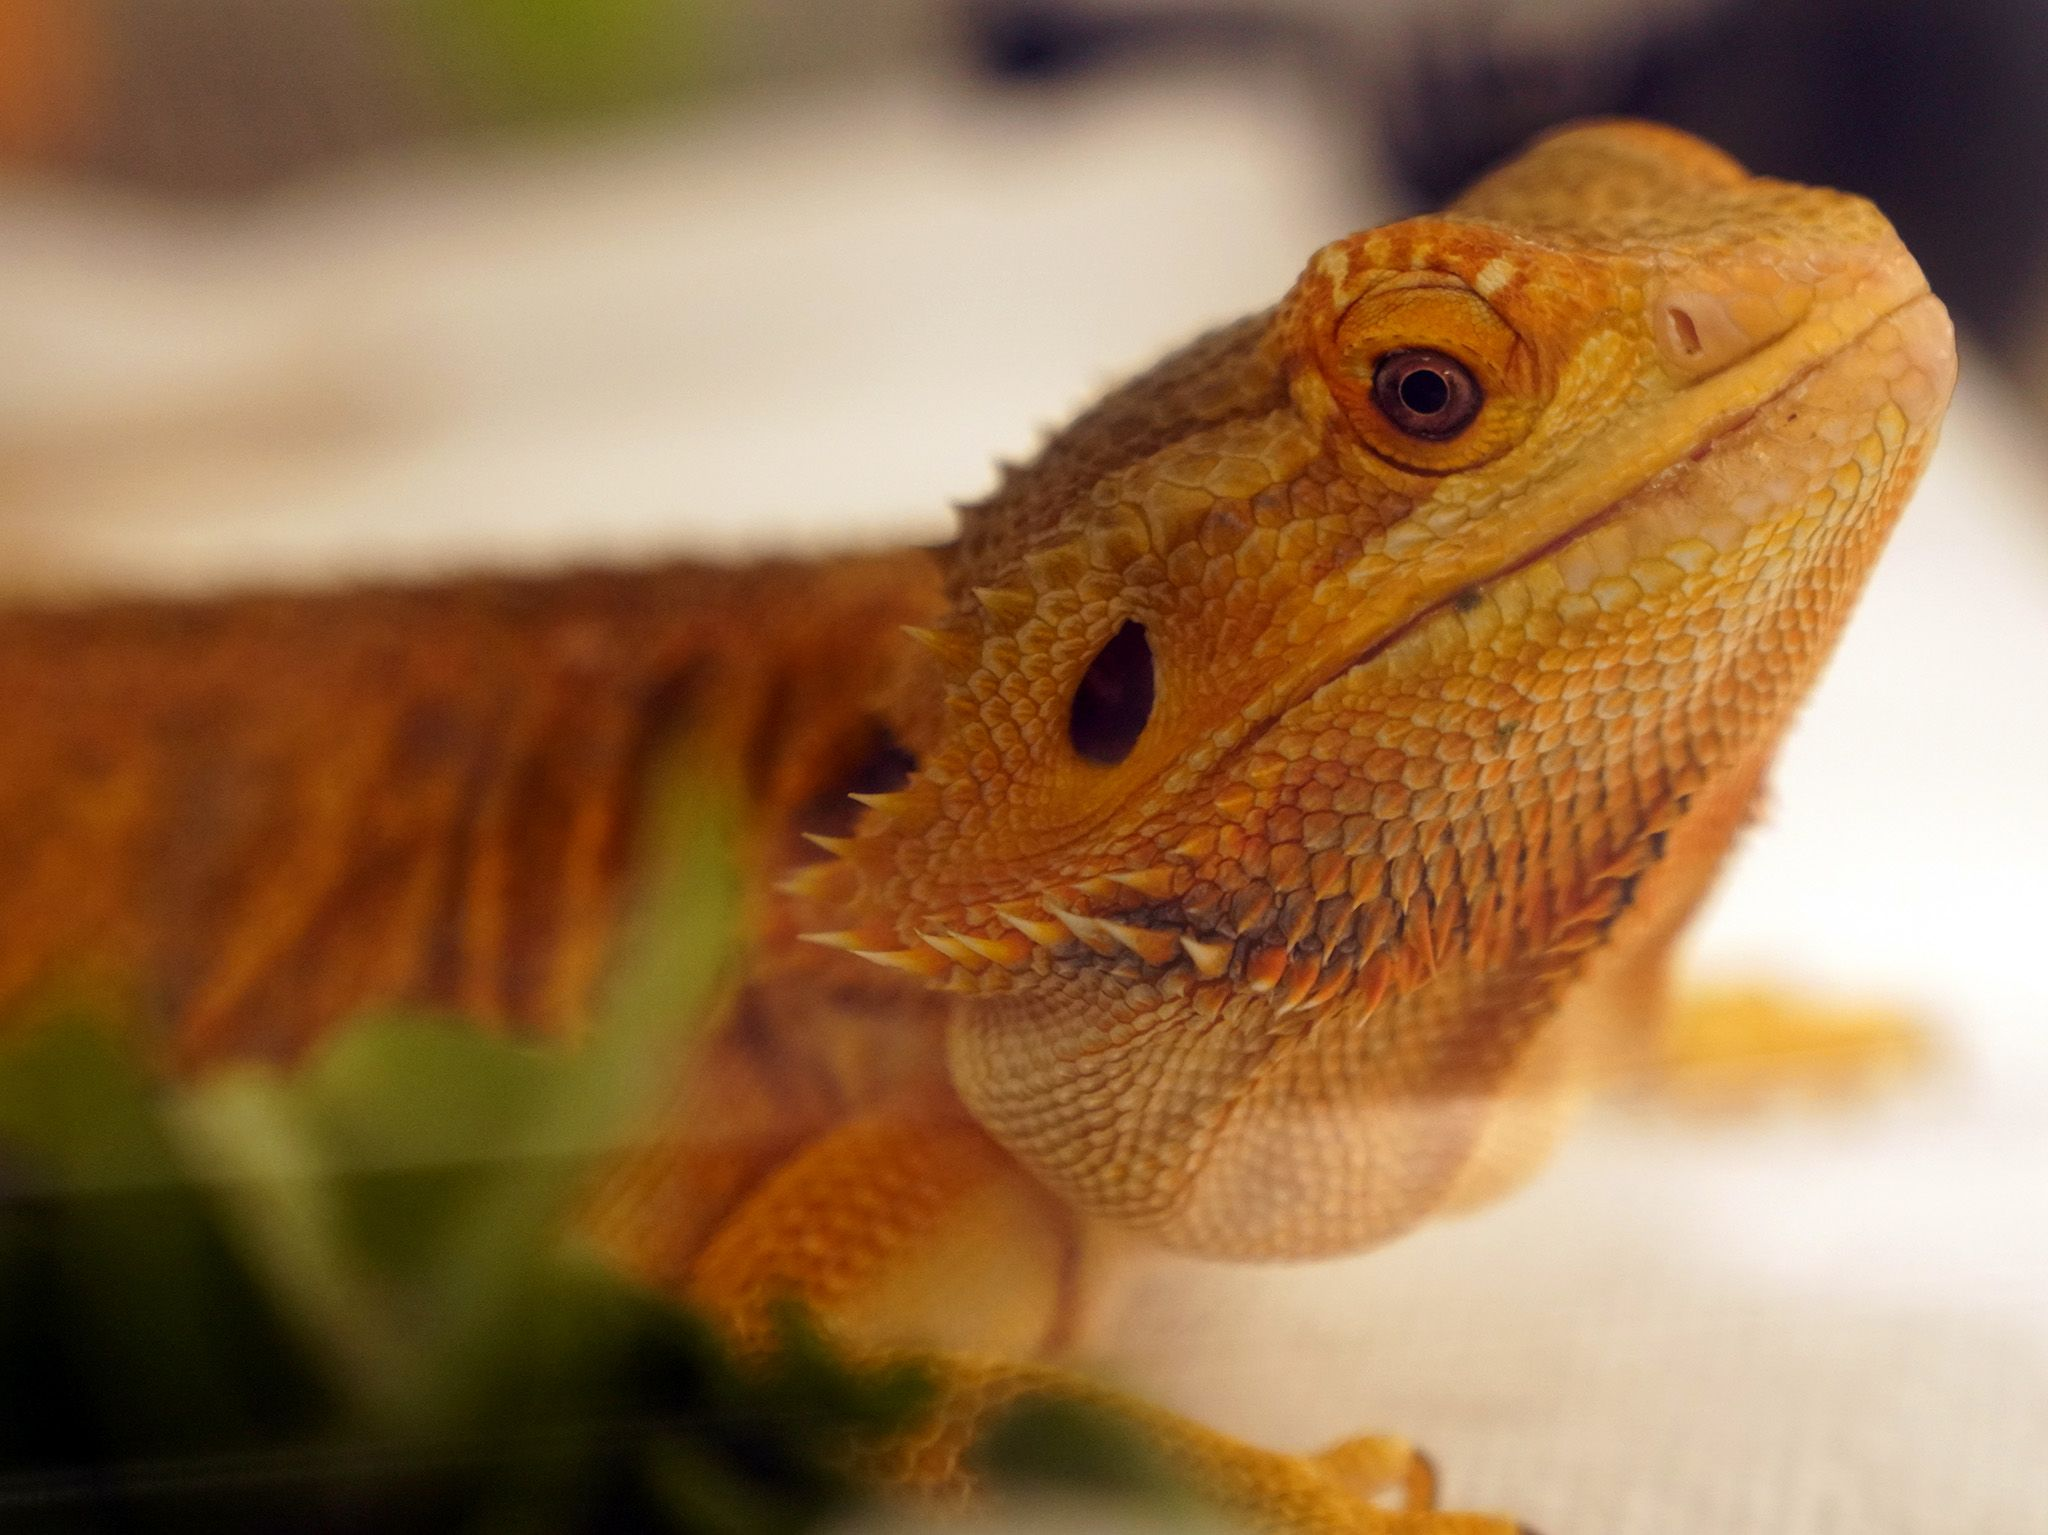 Charles the bearded dragon after her surgery. This image is from Dr. T Lone Star Vet. [Photo of the day - October 2019]